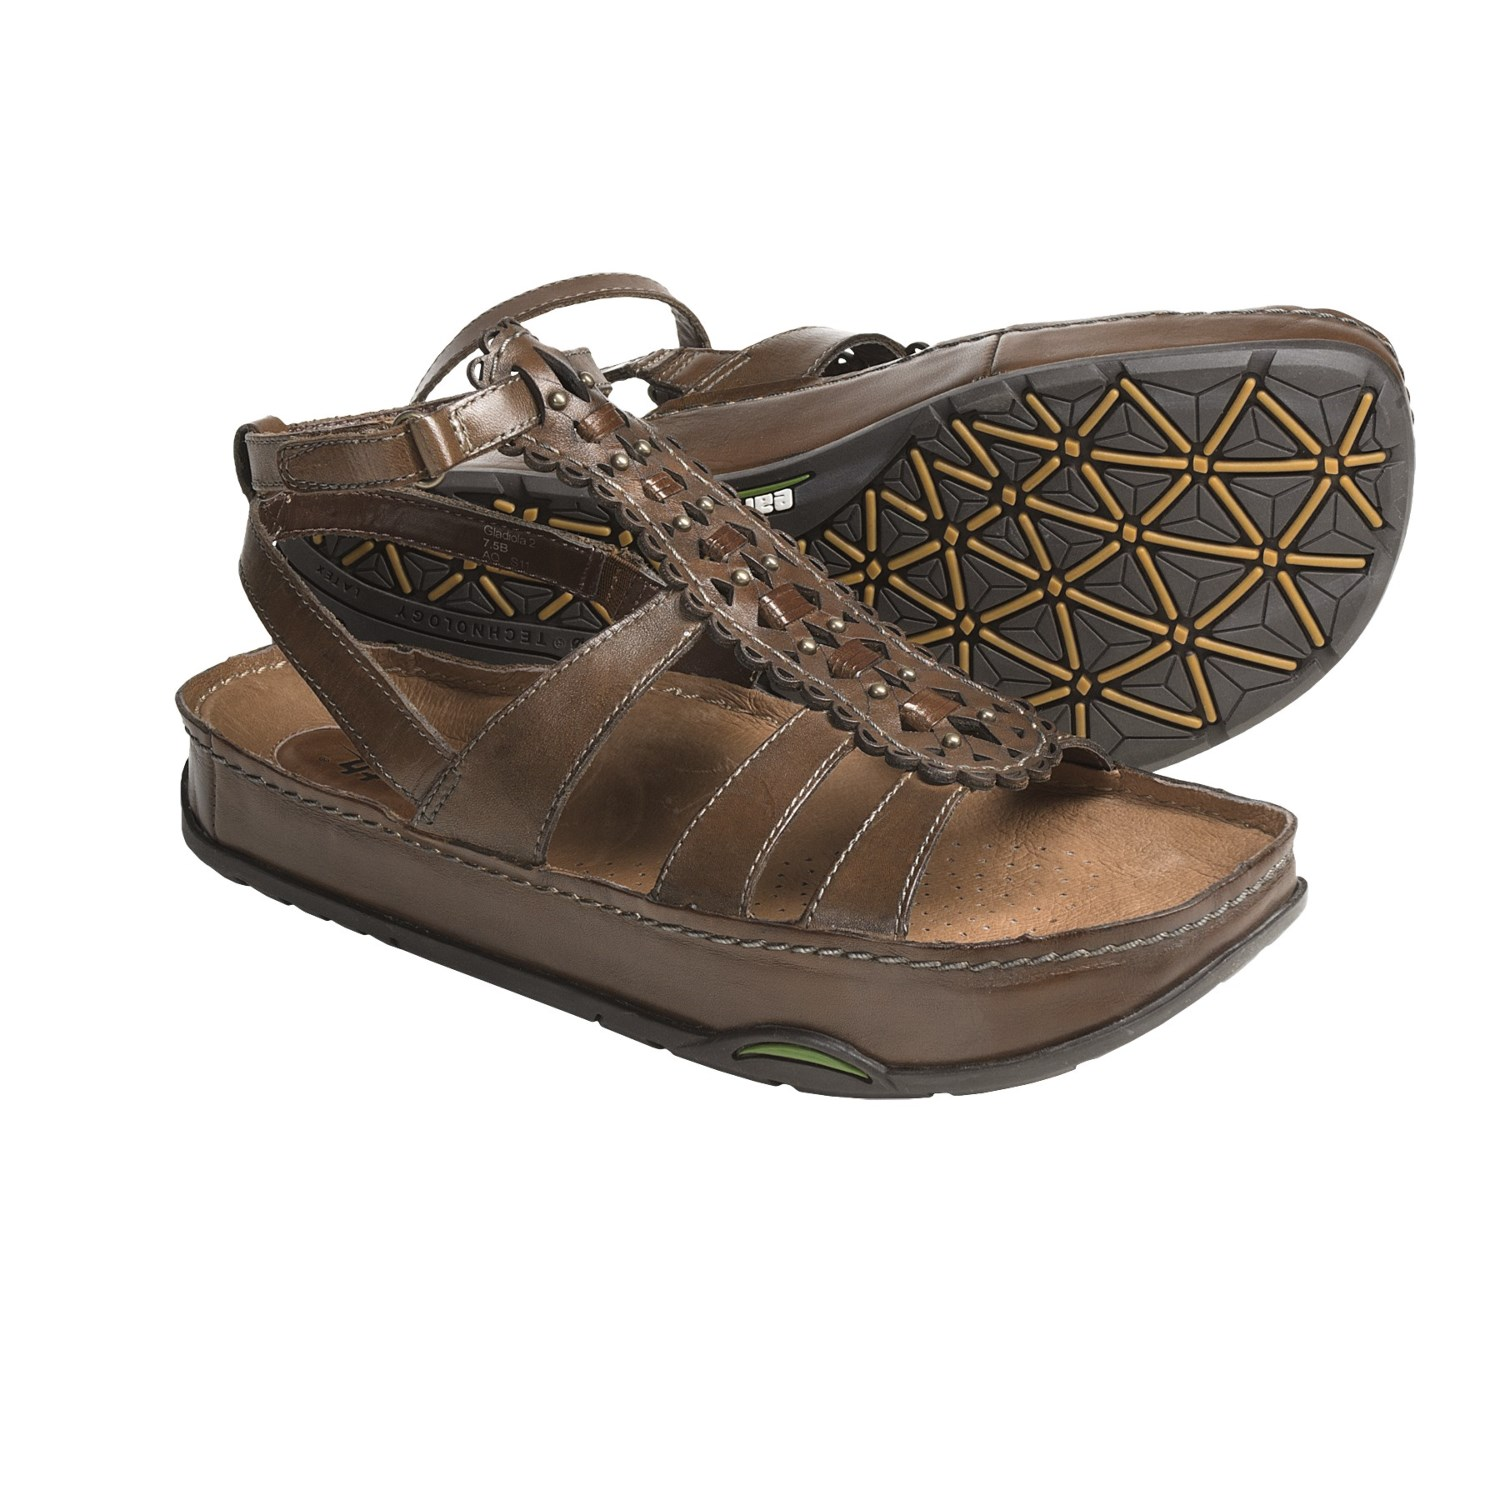 Earth Gladiola 2 Sandals (For Women) 4232H - Save 46%